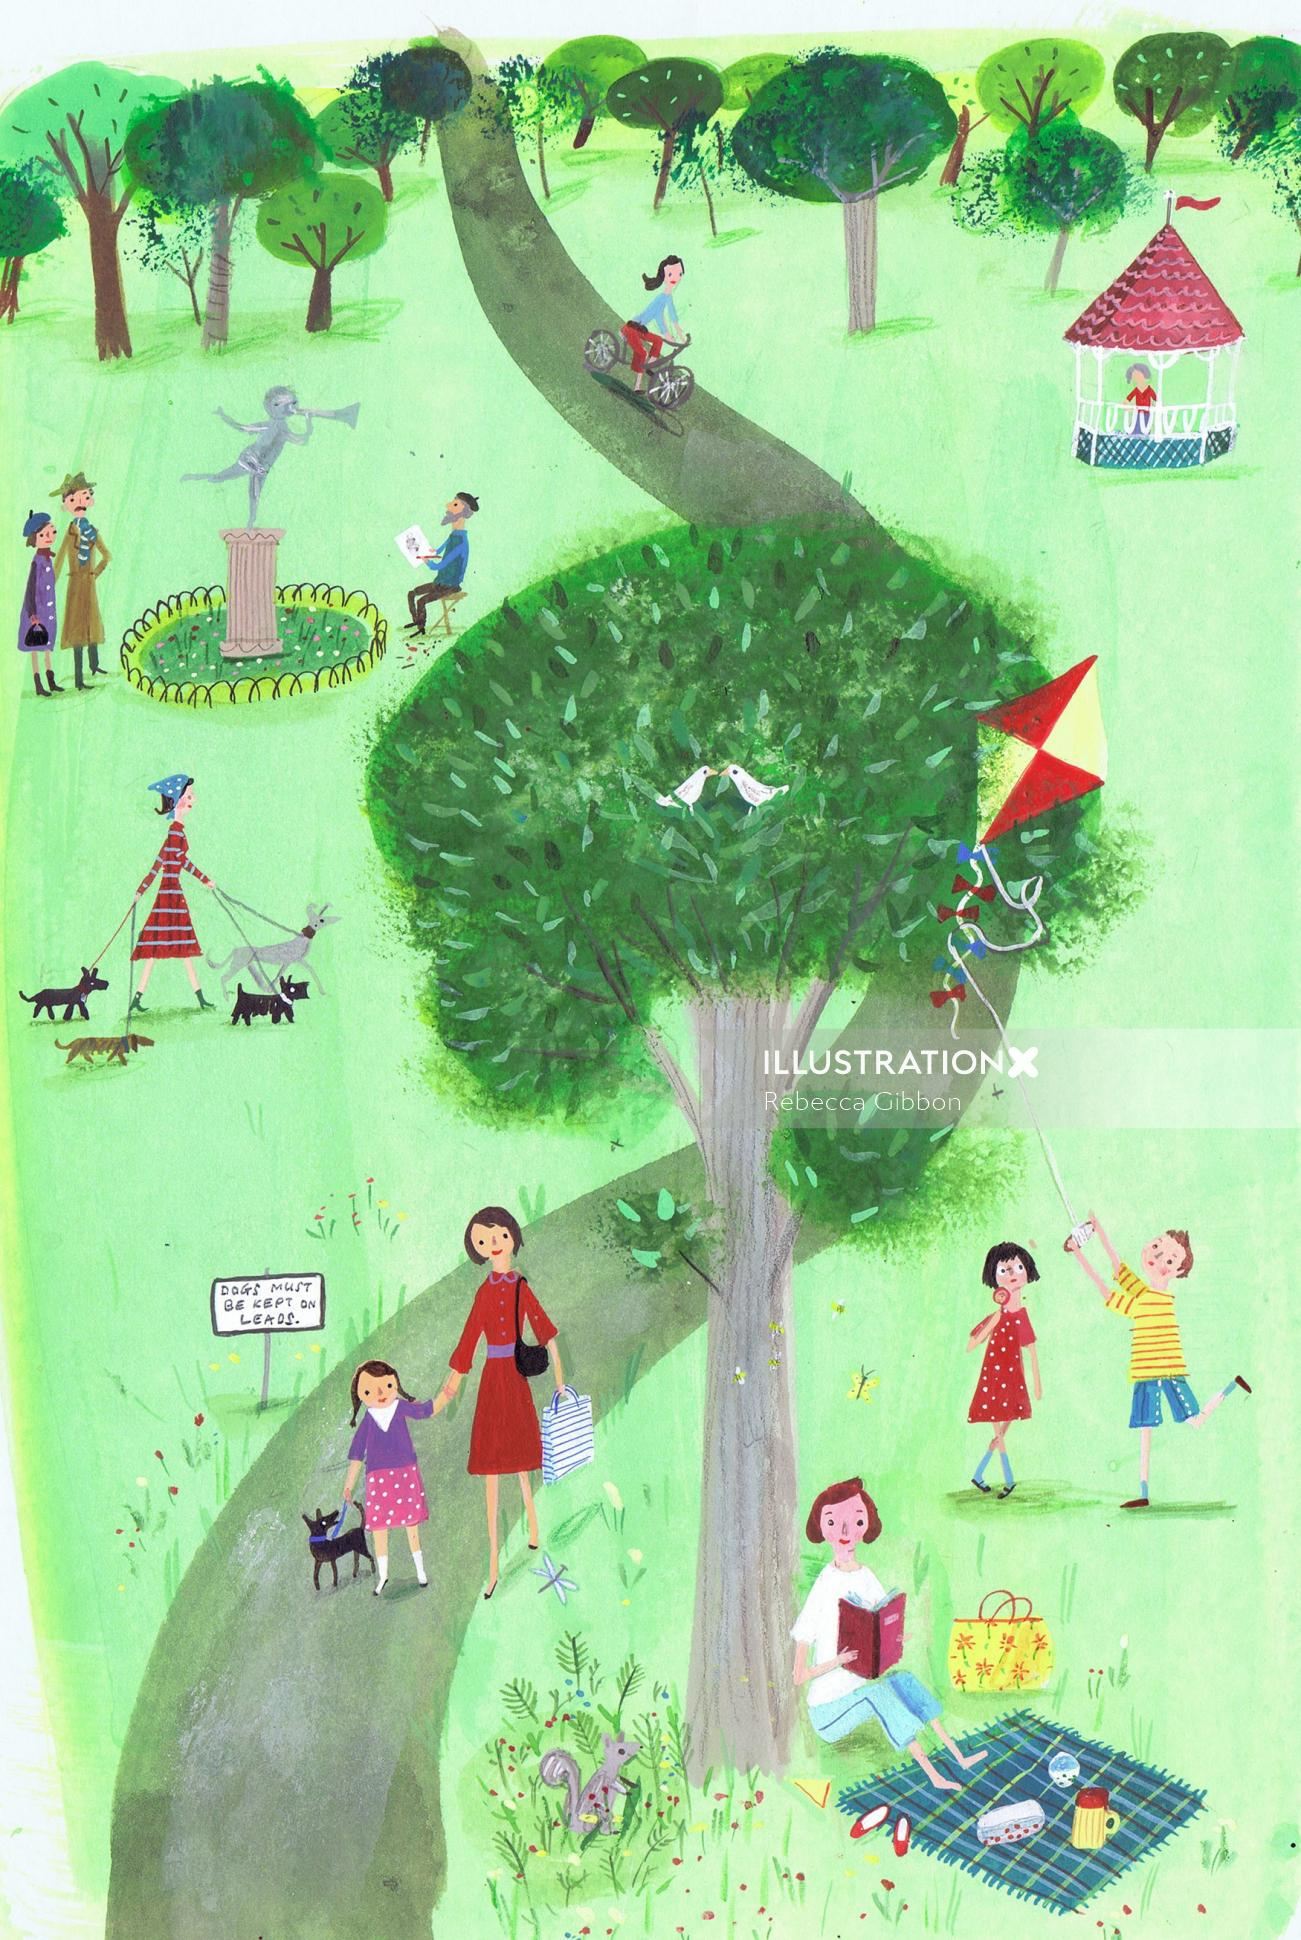 Illustration of children in a park